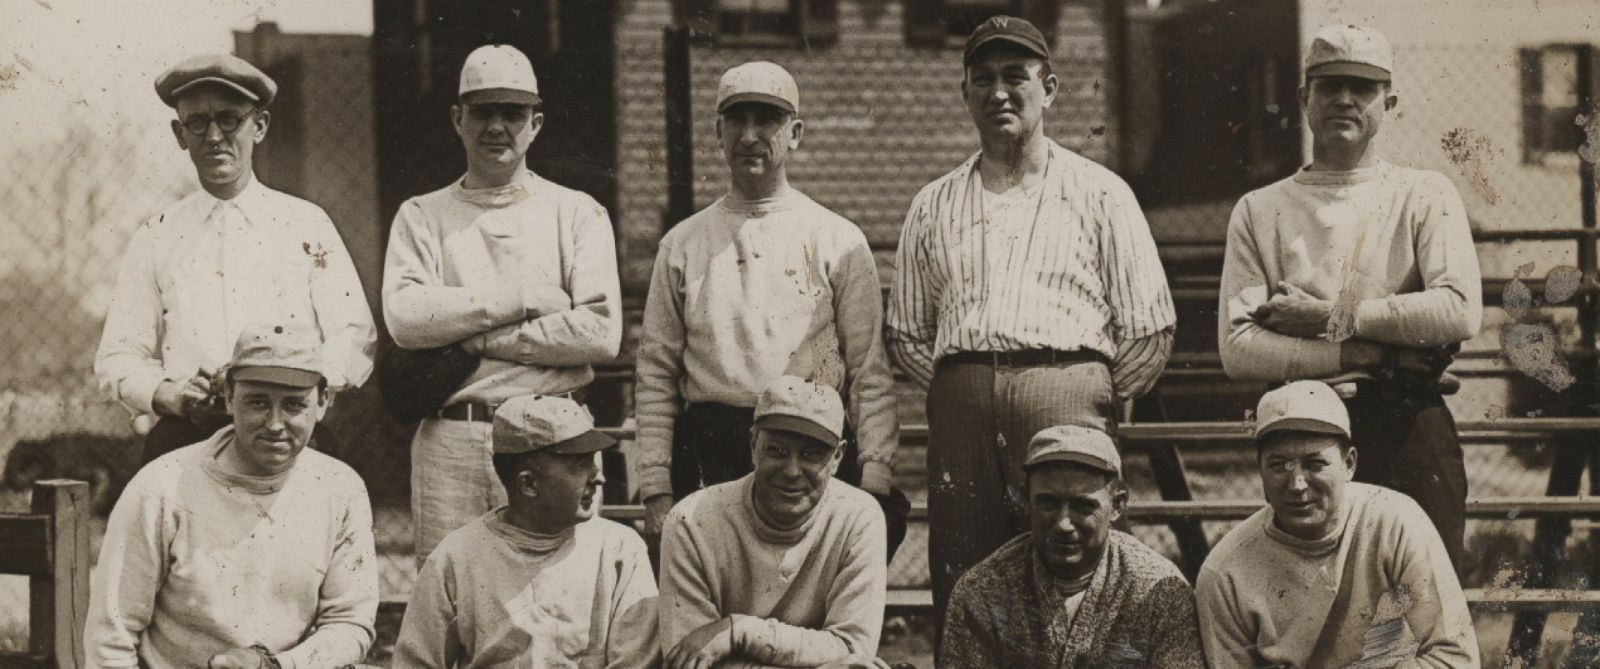 PHOTO: A ragtag band of players gathered for the 1926 Congressional Baseball Game, which newspapers reported was the first matchup in years.